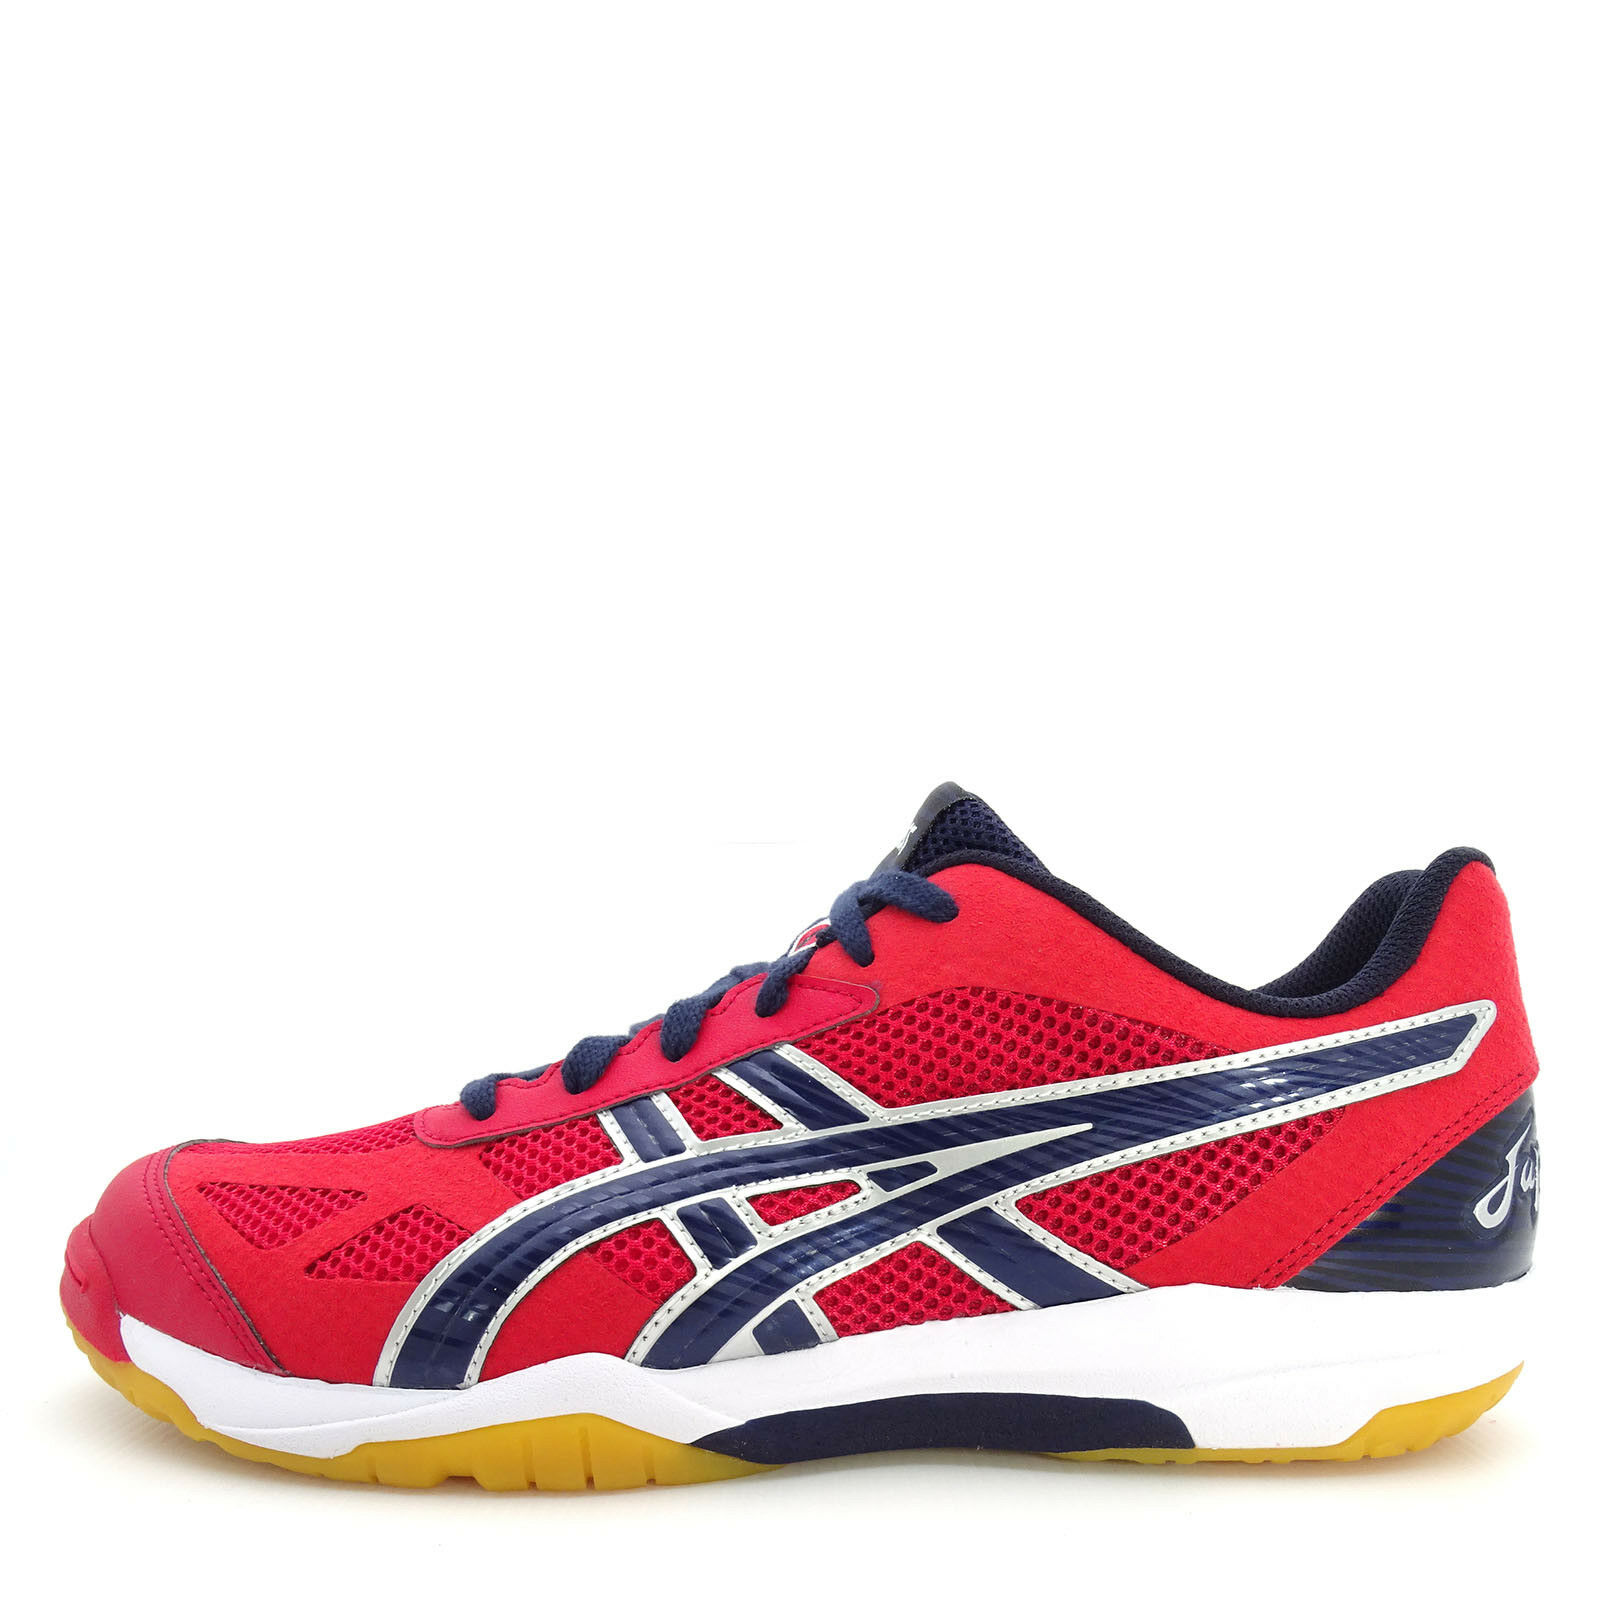 Asics Rote Japan [TVR490-2358] Light [TVR490-2358] Japan Volleyball Badminton Shoes Red/Navy f9ae3c